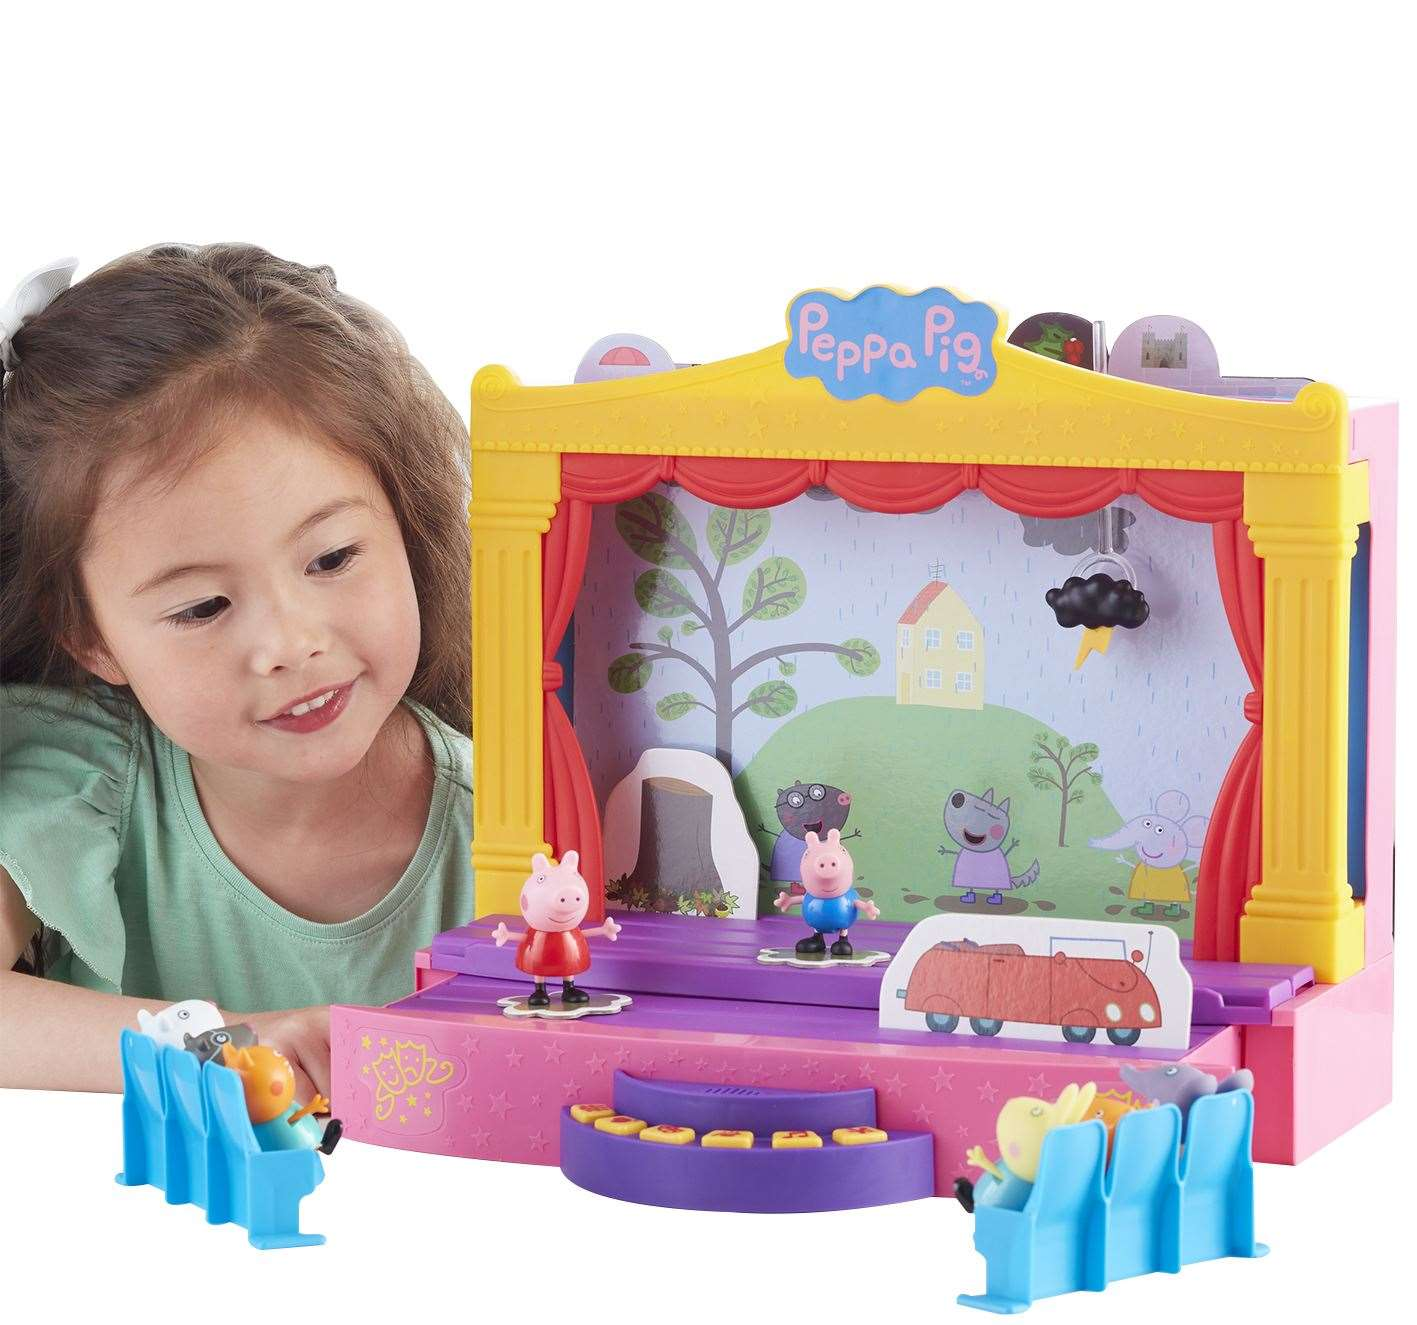 Peppa Pig Peppa's Stage Playset (Character Options), £39.99